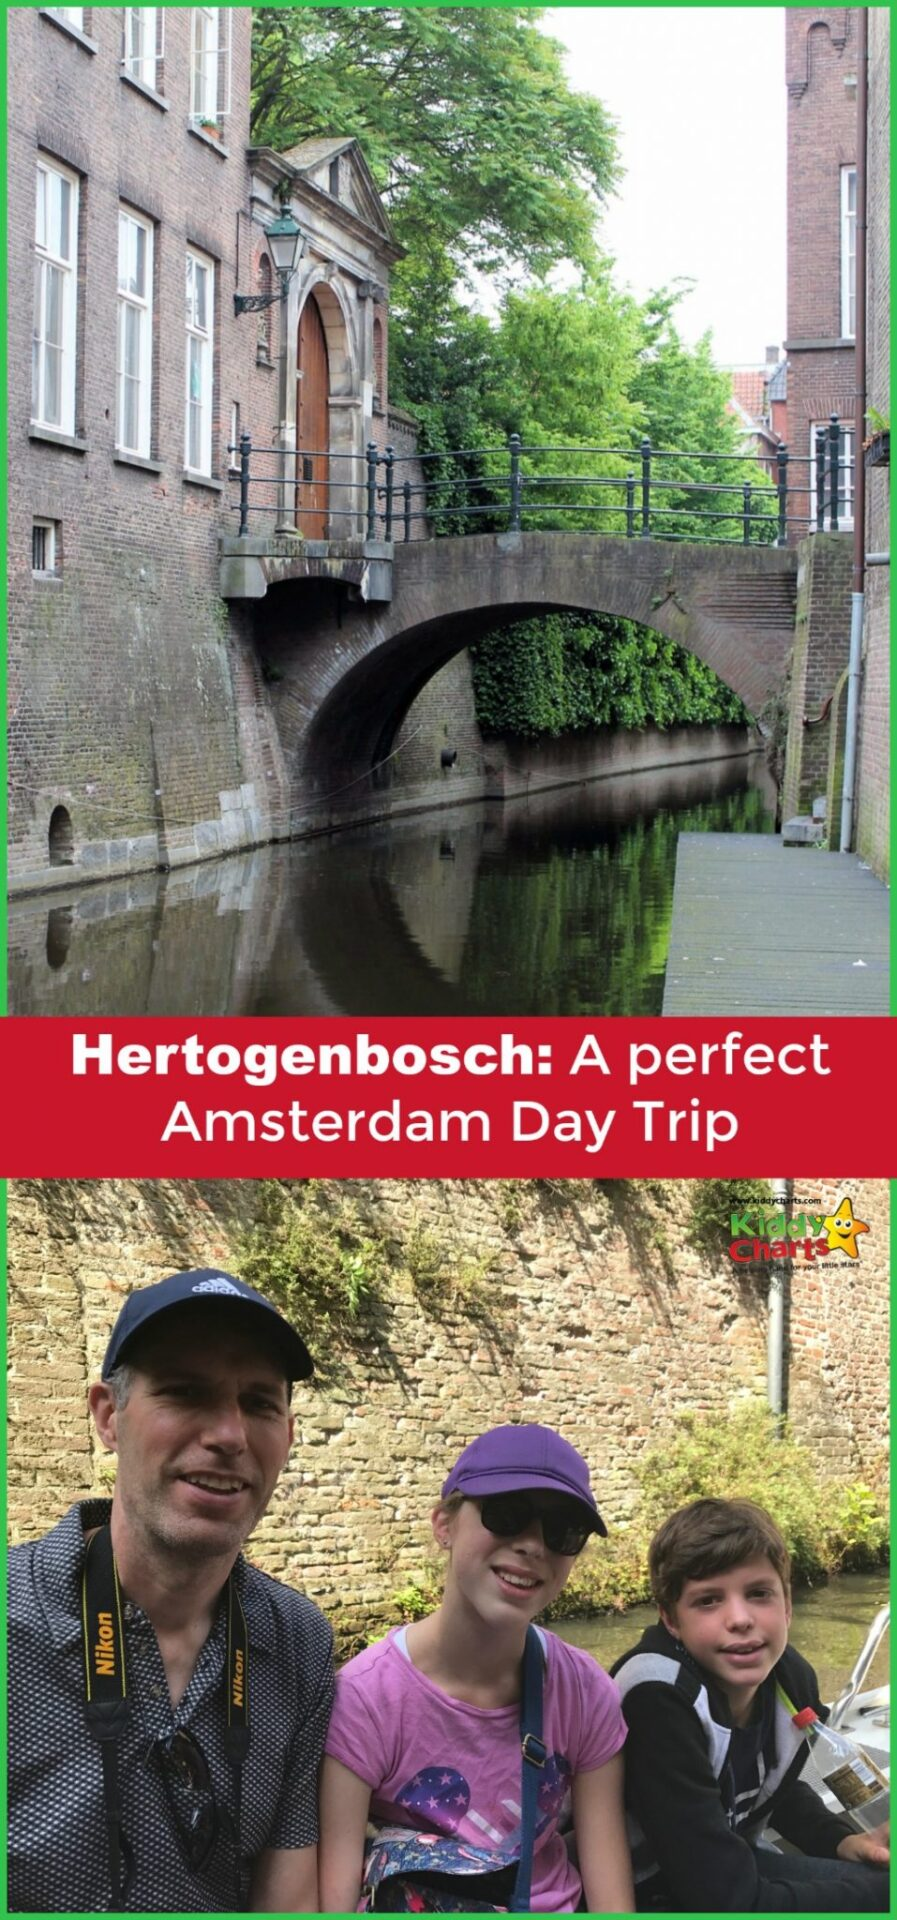 Hertogenbosch is a perfect day trip from Amsterdam, and there is even enough to do for you to want to stay longer too!